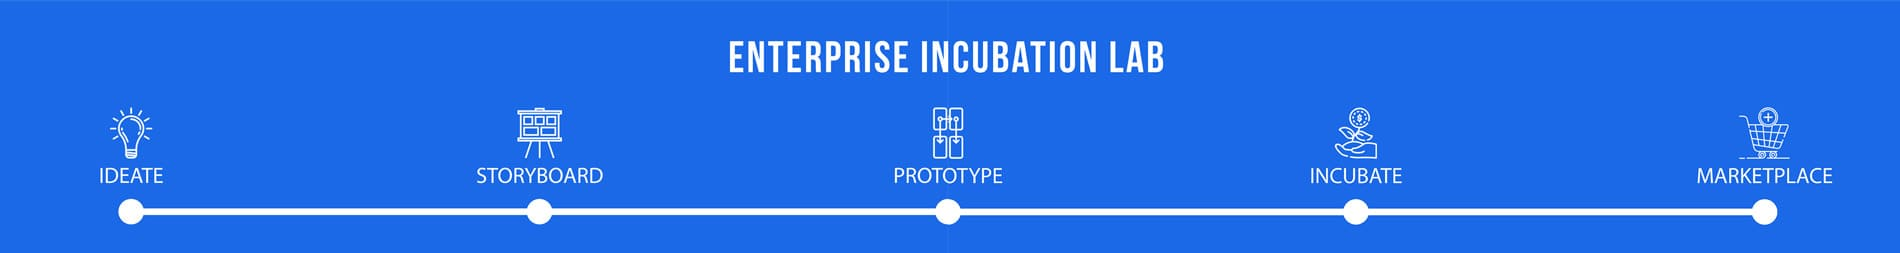 enterprise incubation